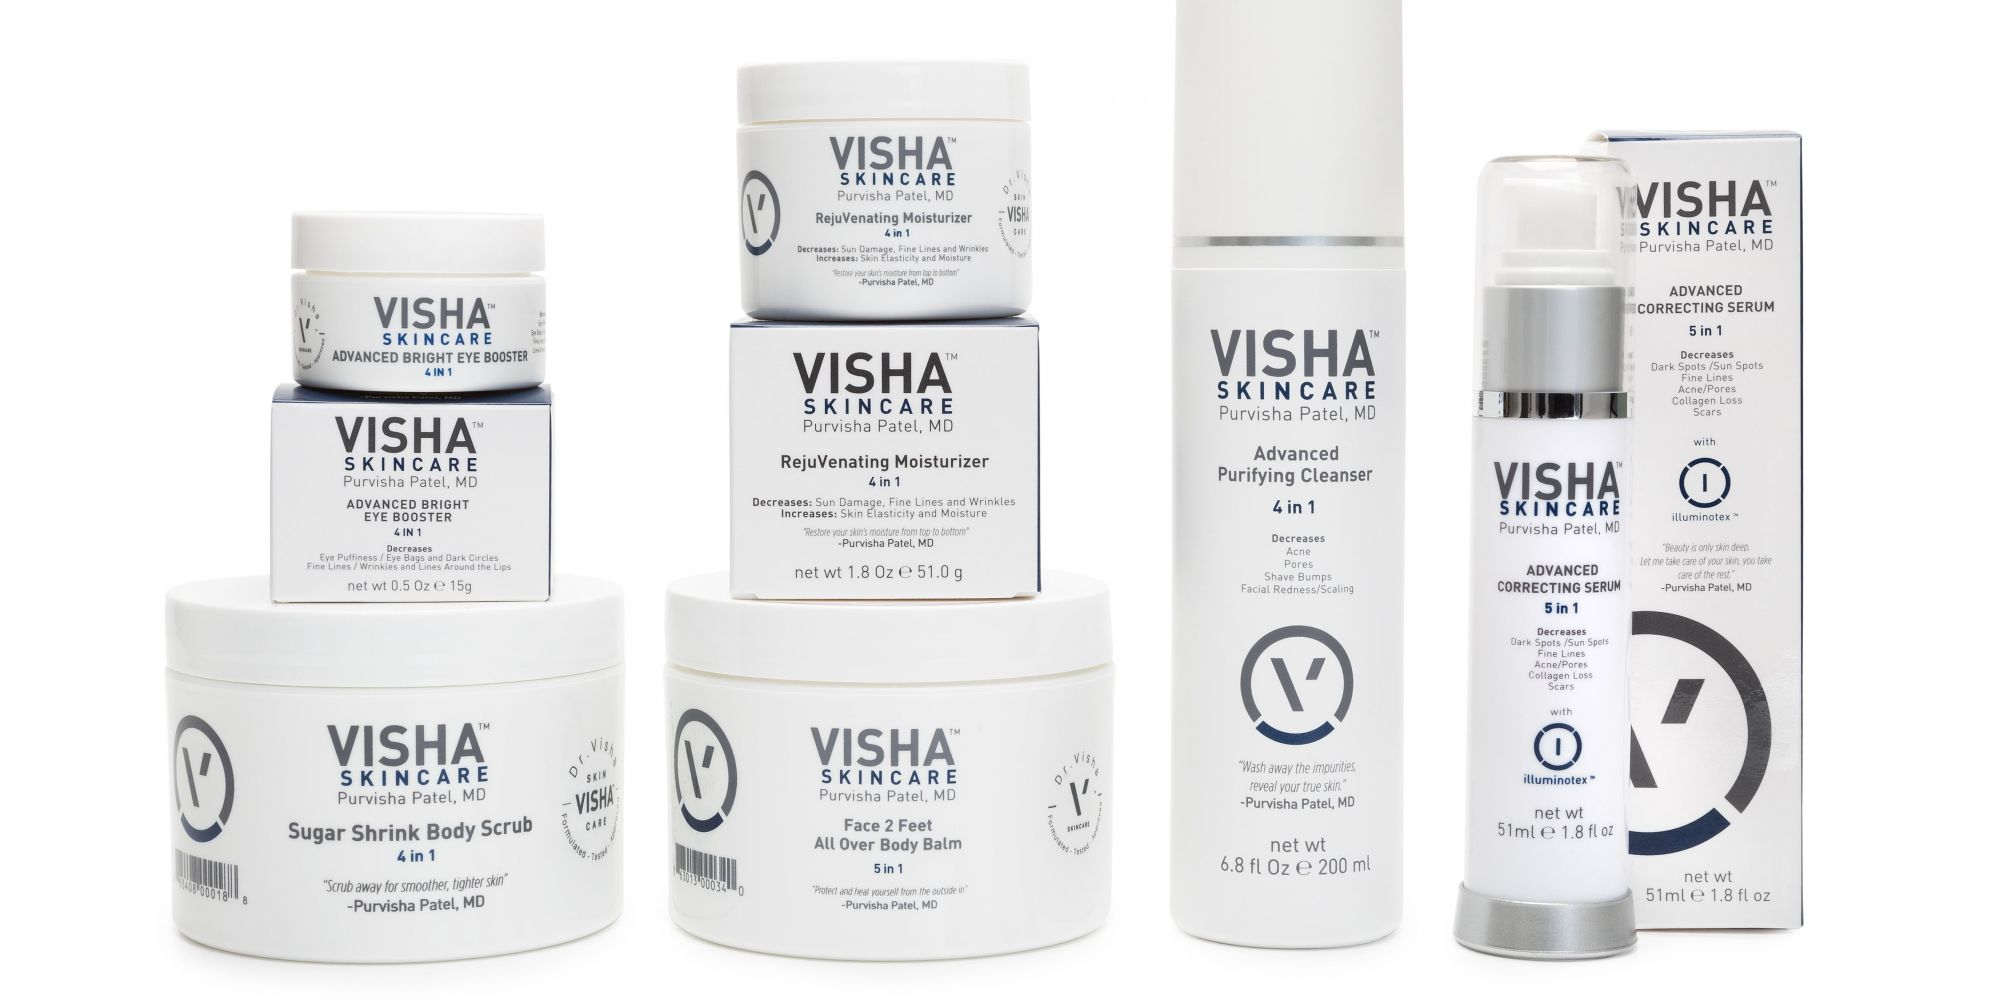 The Doctor's In: Visha Skincare Founder And Dermatologist Purvisha Patel Prescribes Multitasking Natural Products